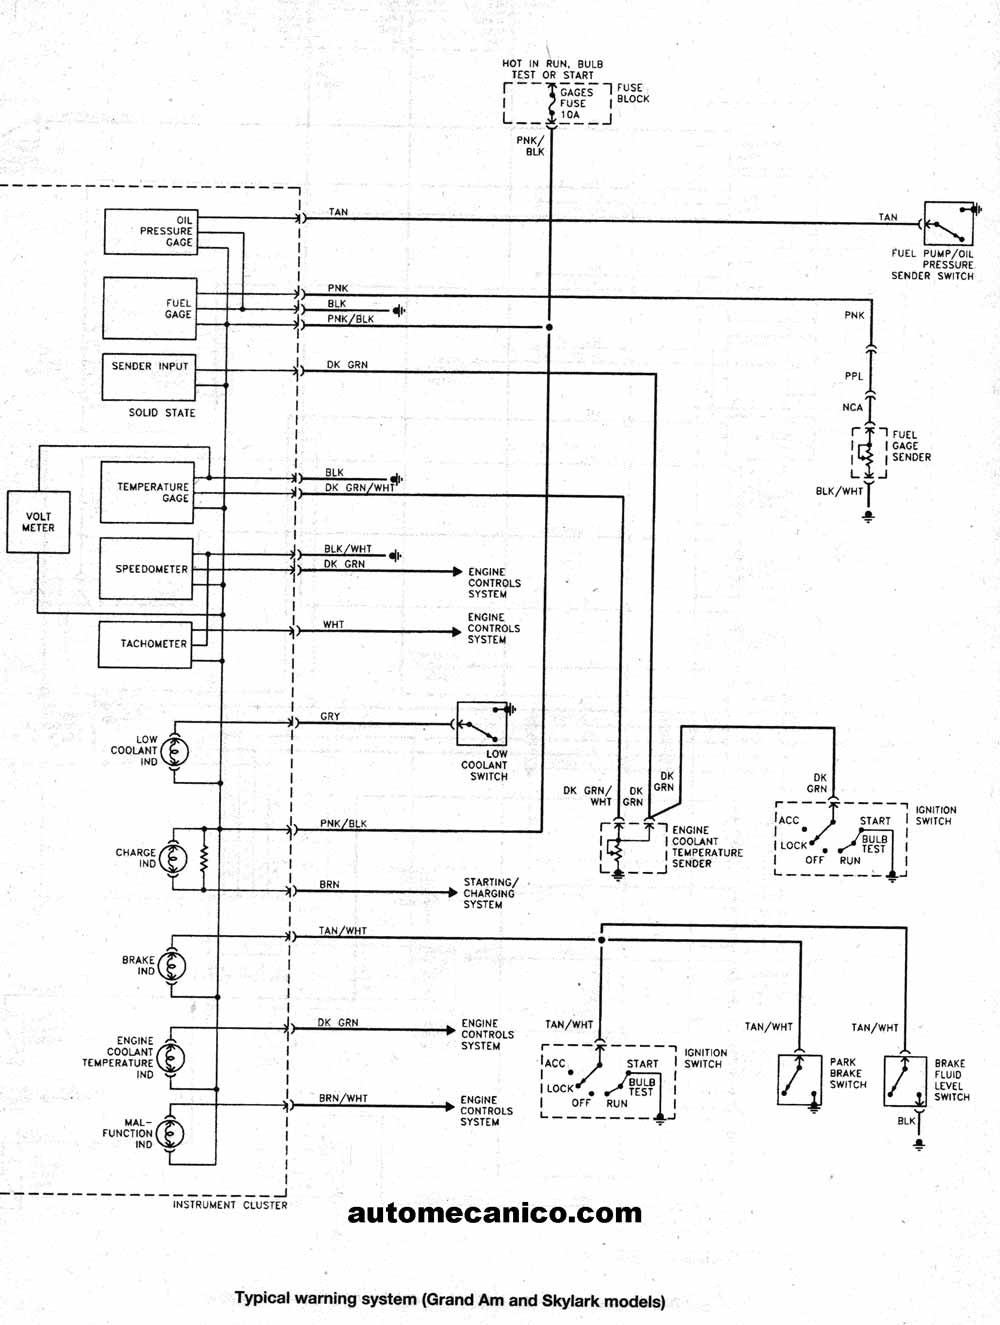 2002 Pontiac Grand Am Cooling System Diagram Not Lossing Wiring 97 Get Free Image About 34 Diagrams Prix